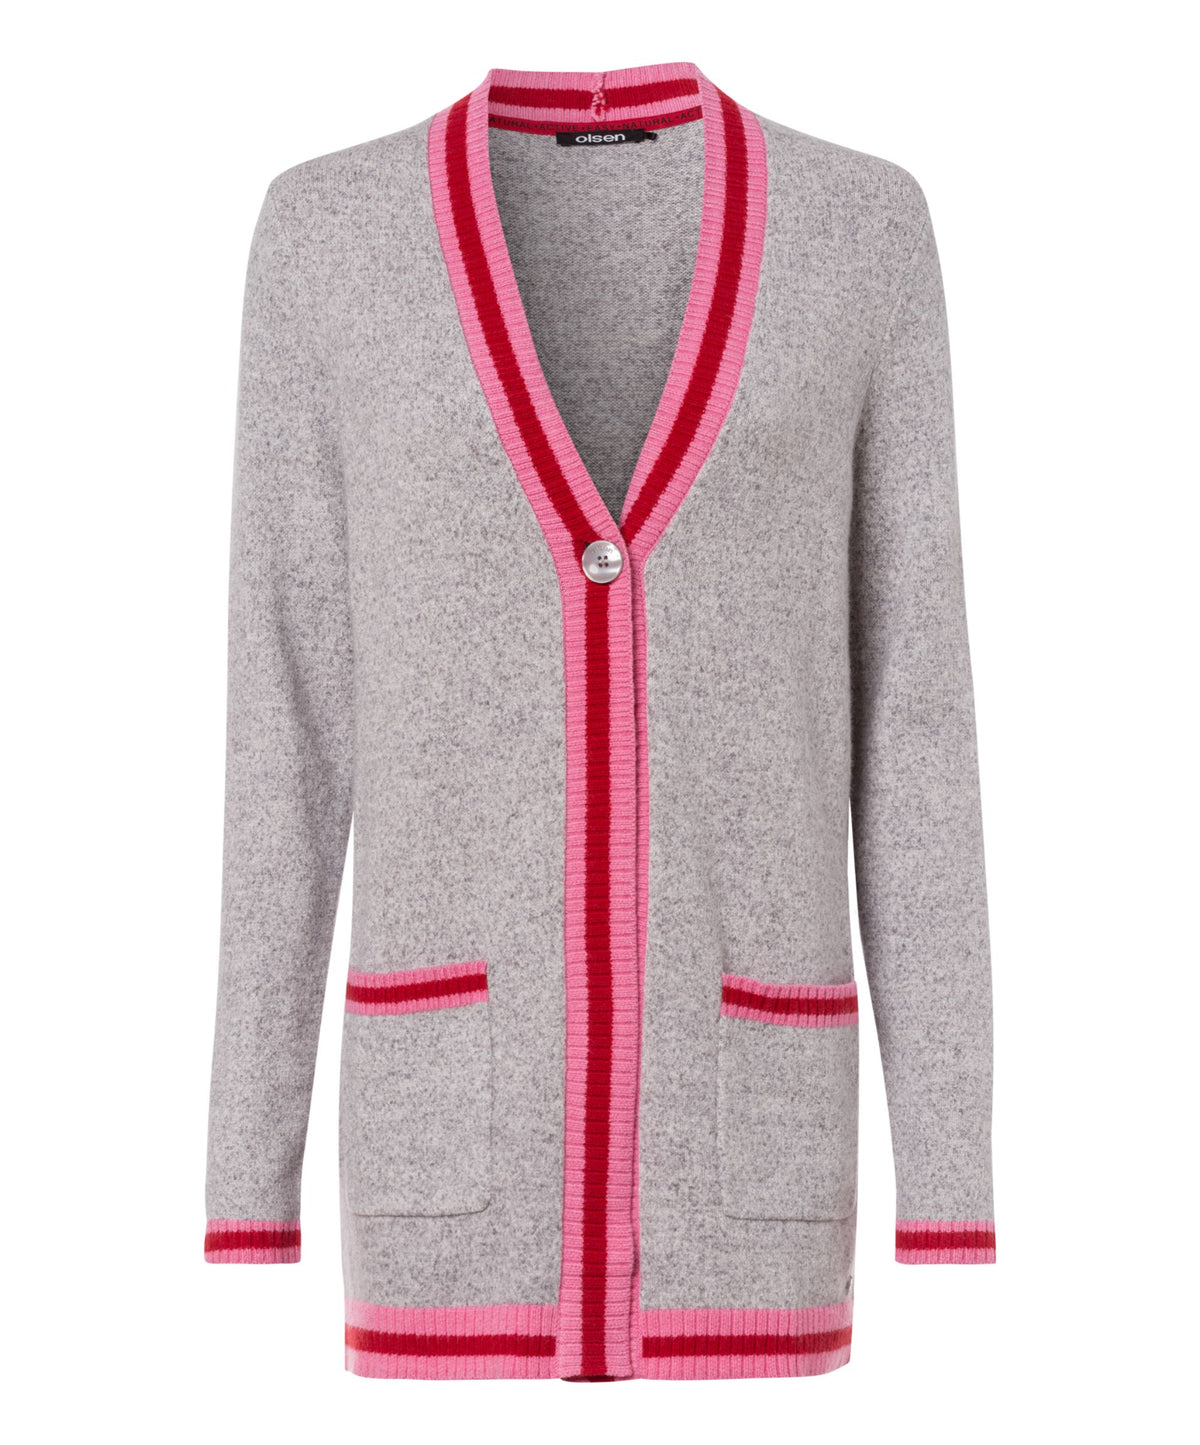 Collegiate Trim Cardigan